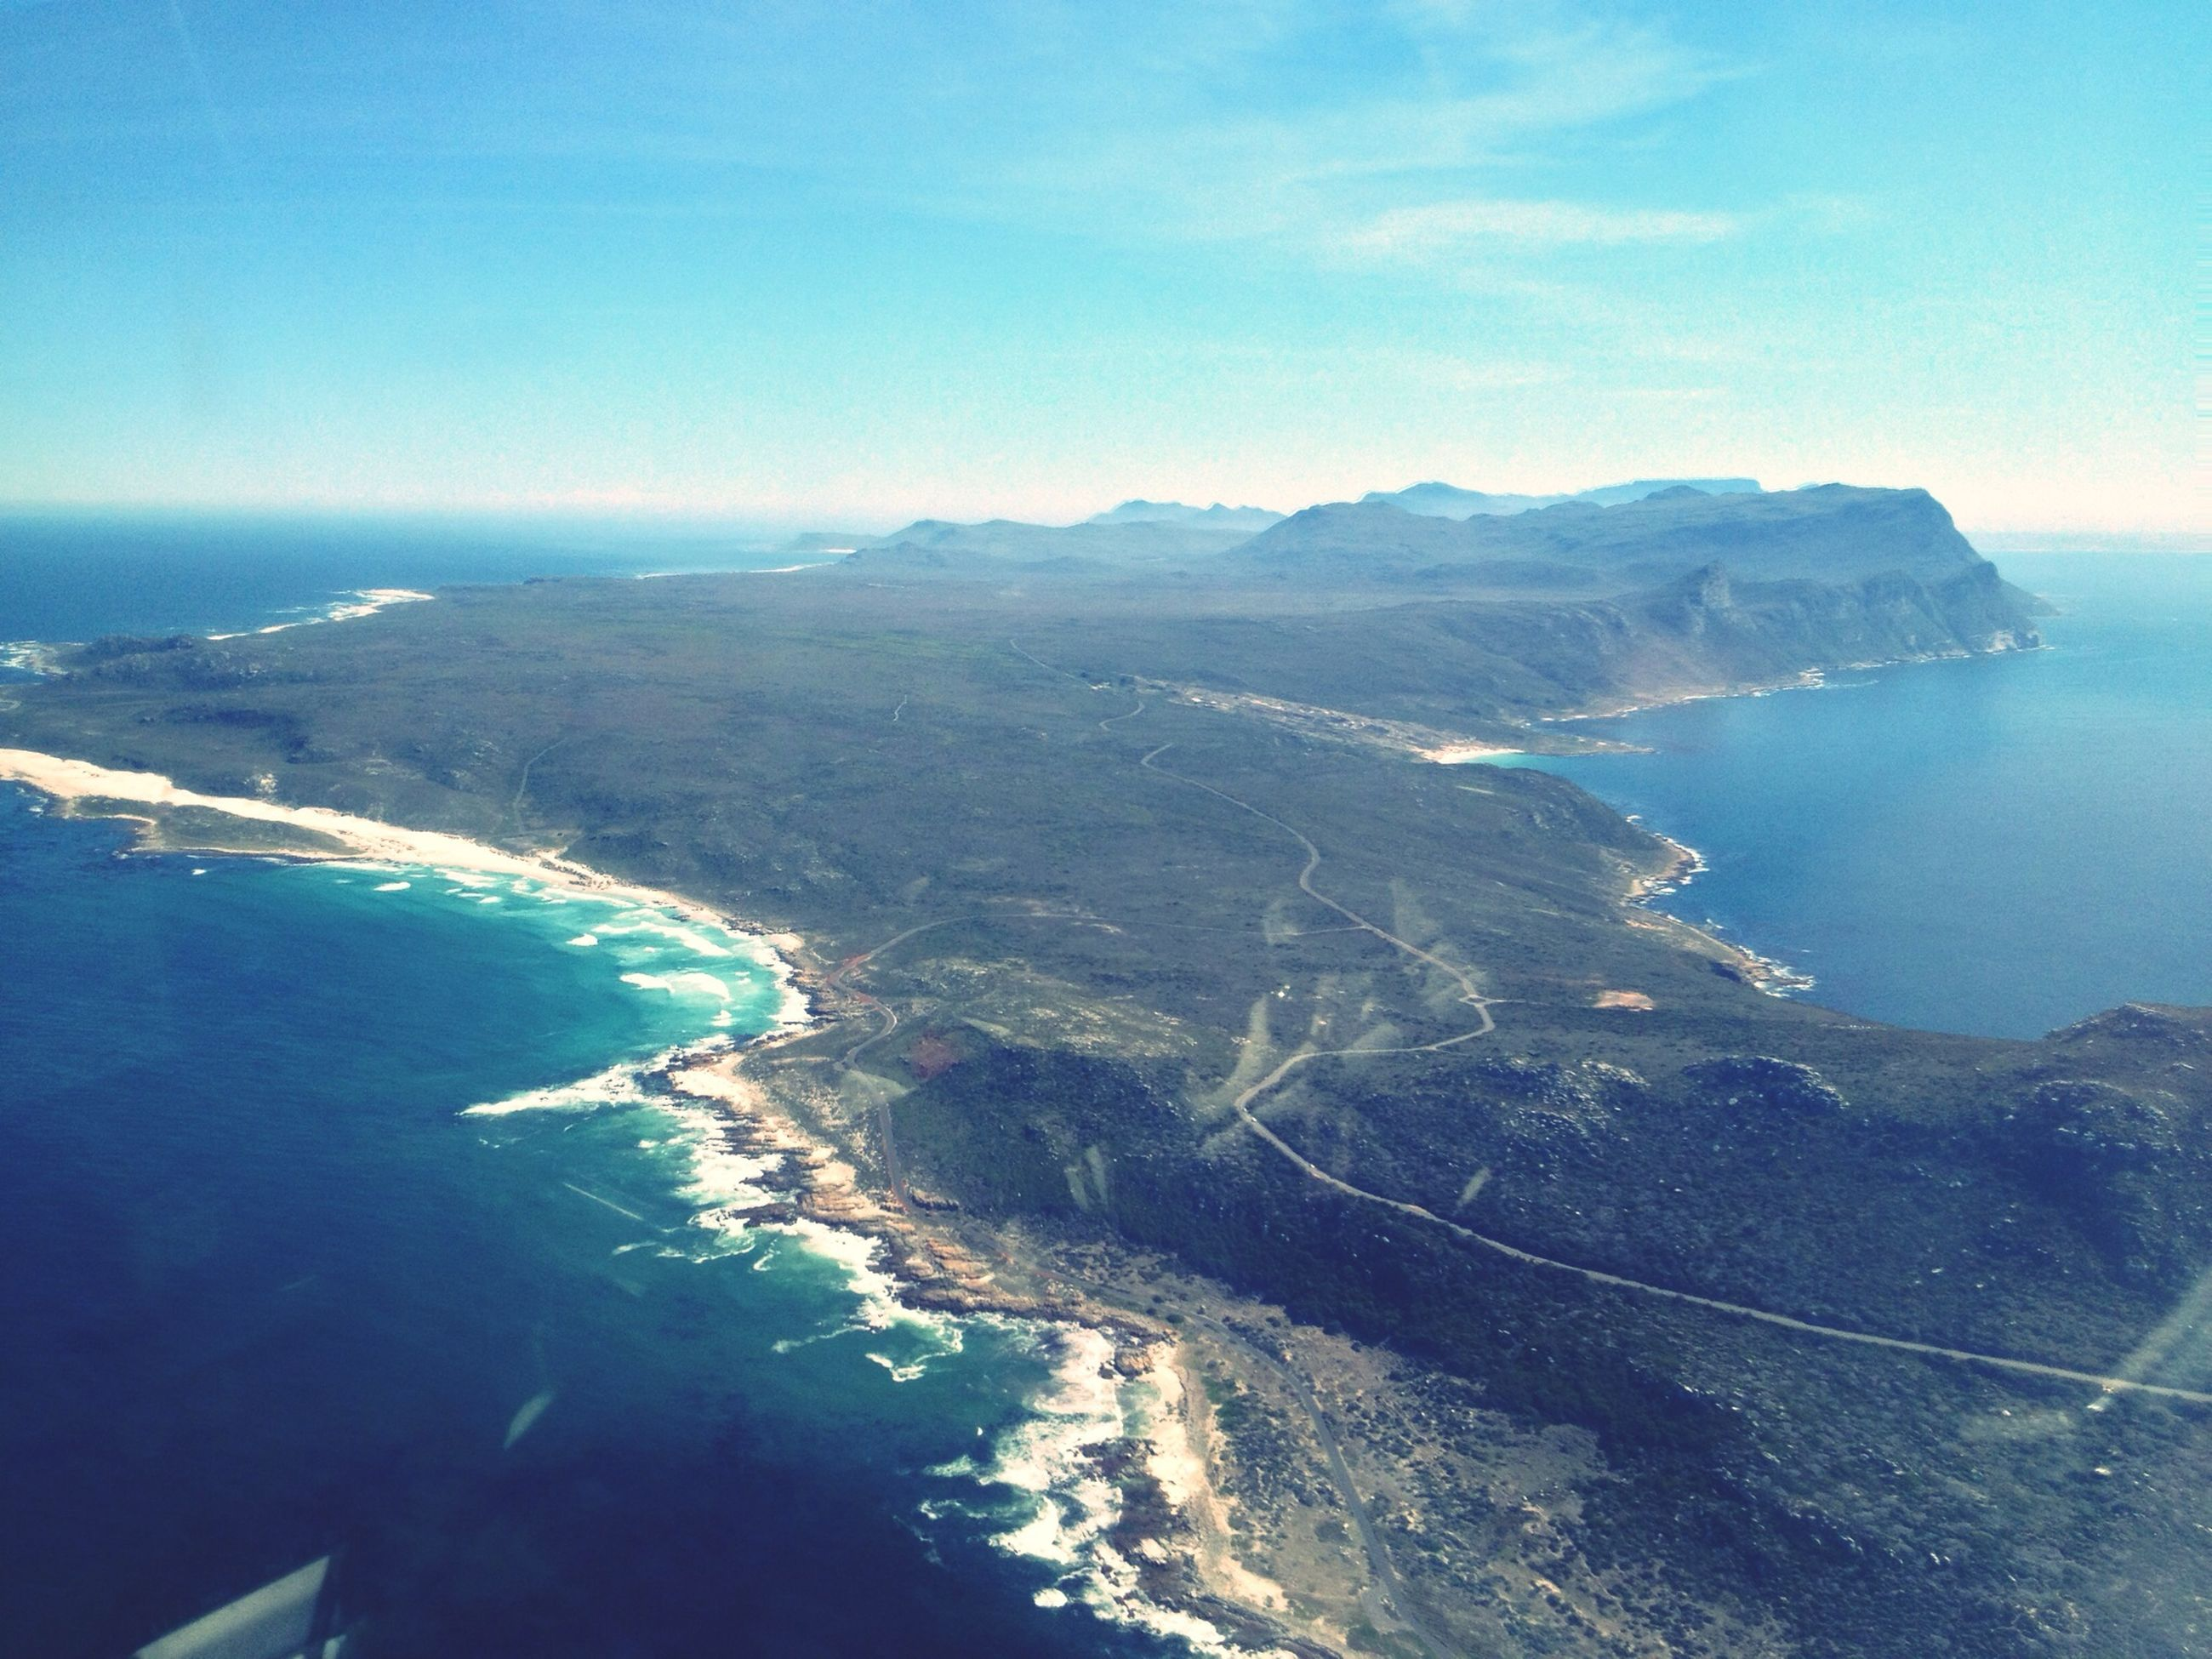 sea, mountain, scenics, water, aerial view, tranquil scene, beauty in nature, blue, tranquility, high angle view, mountain range, nature, coastline, sky, landscape, idyllic, day, outdoors, no people, horizon over water